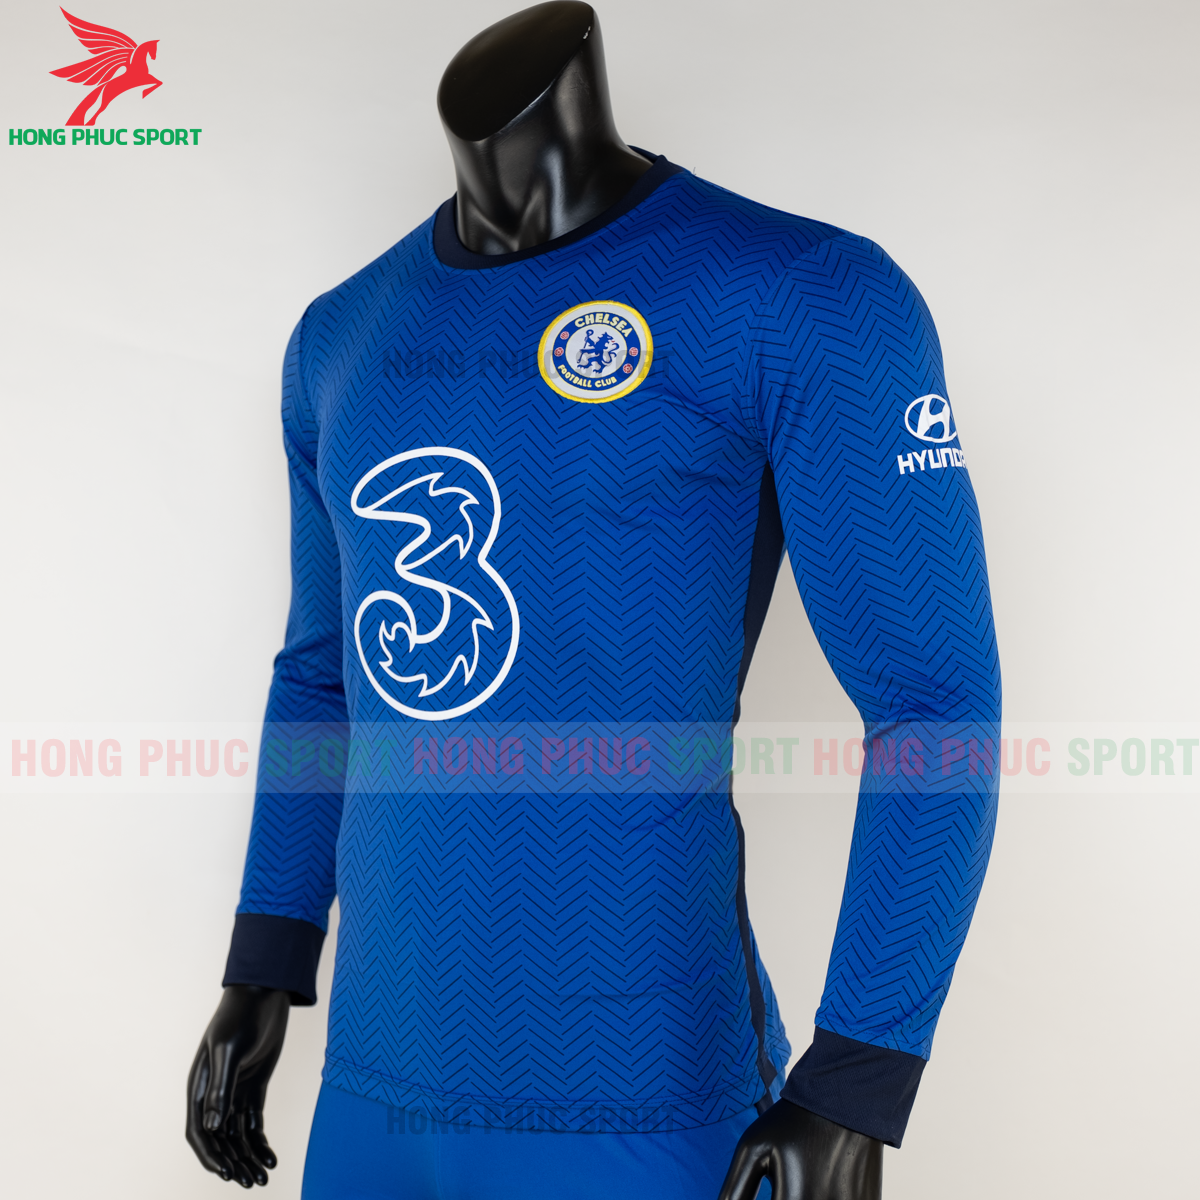 https://cdn.hongphucsport.com/unsafe/s4.shopbay.vn/files/285/ao-dai-tay-chelsea-2020-san-nha-5-5f8fbca72cbc9.png